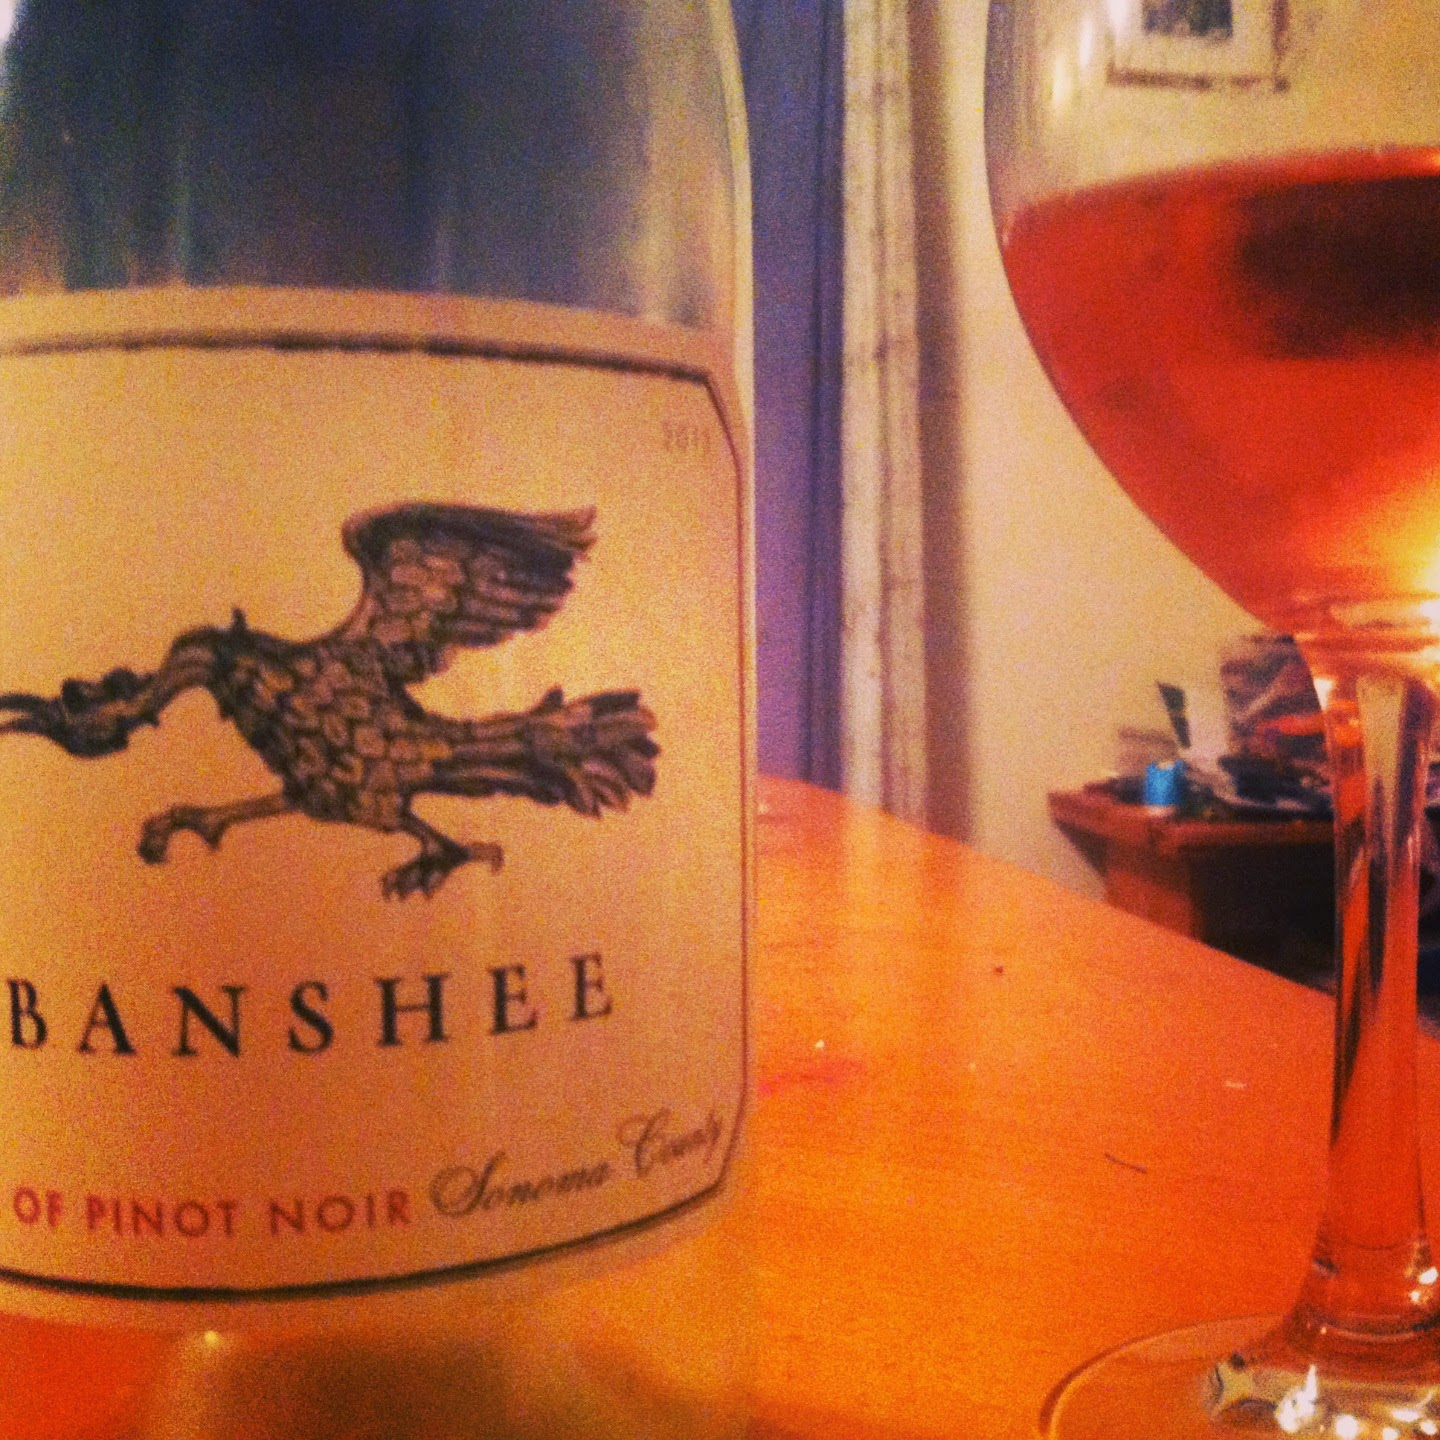 Banshee Rosé of Pinot Noir from Sonoma. Refreshing with Cooking Chat's Grilled Swordfish!